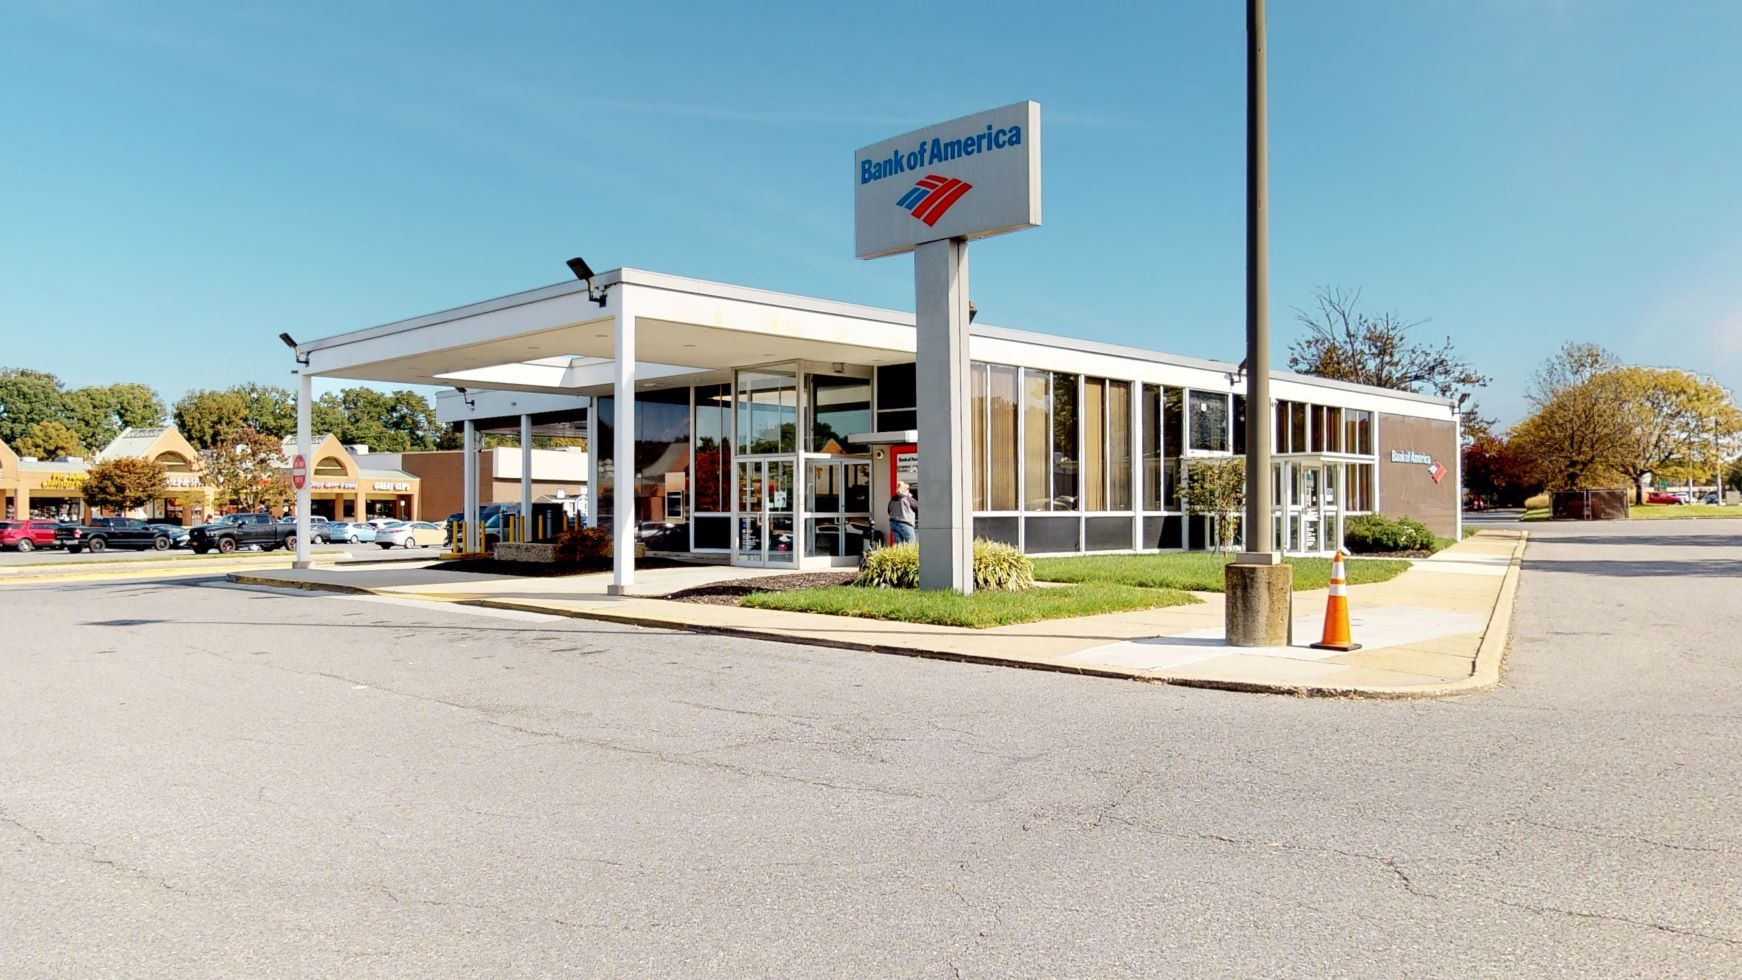 Bank of America financial center with drive-thru ATM | 80 Mountain Rd, Glen Burnie, MD 21060